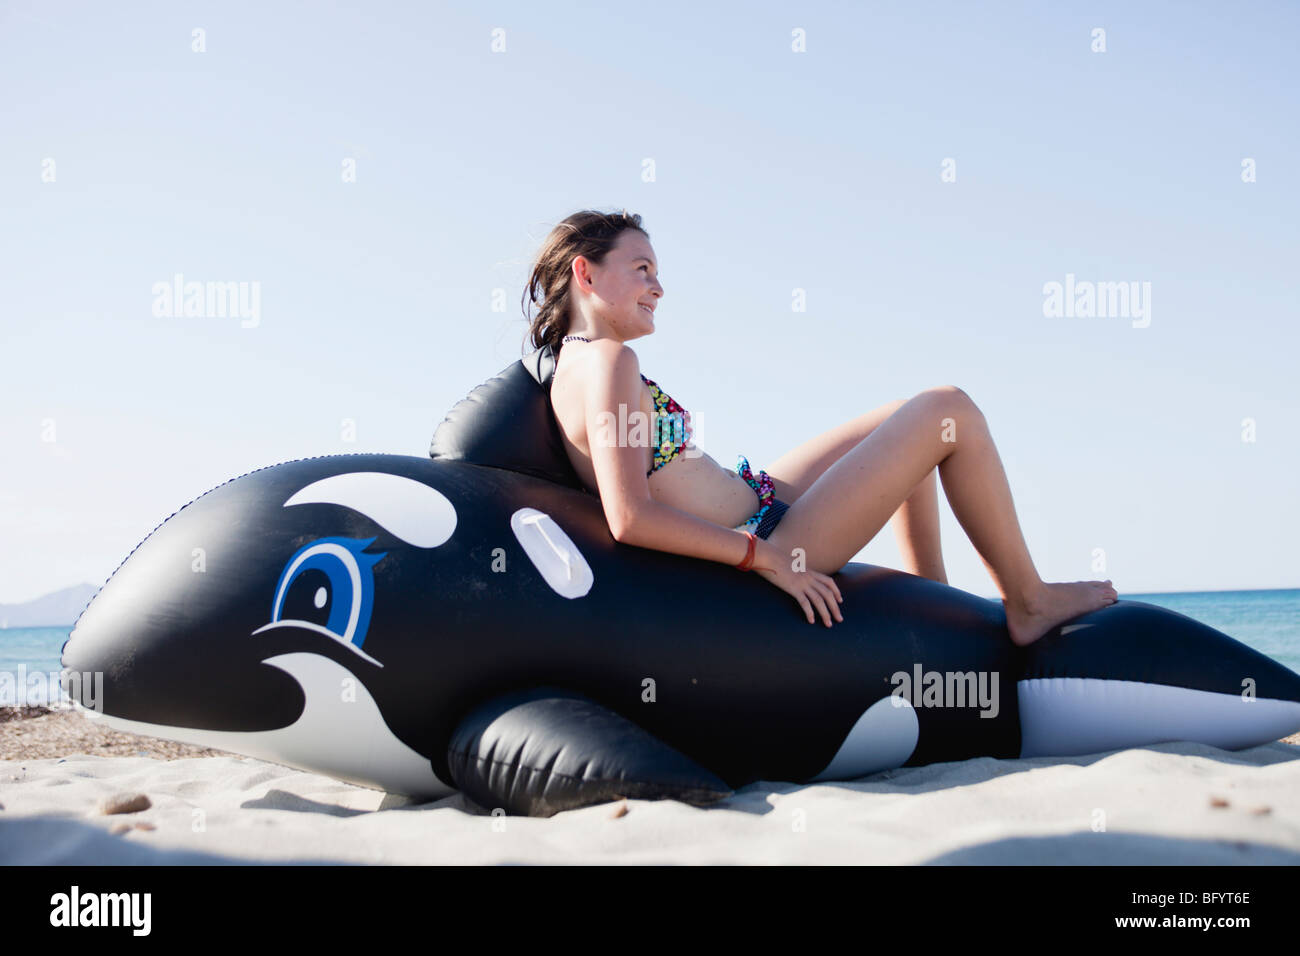 young girl sitting on toy whale - Stock Image